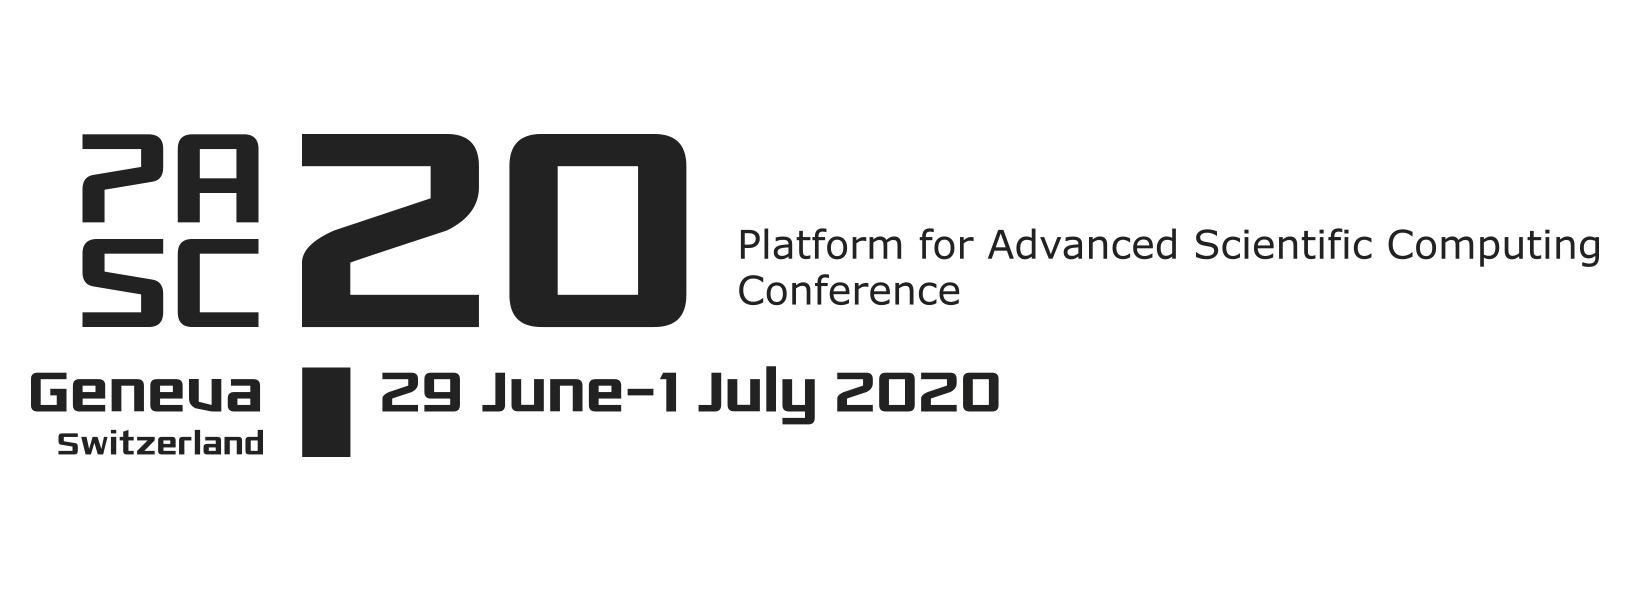 PASC20 Conference, June 29 to July 1, 2020, University of Geneva (Uni Mail)